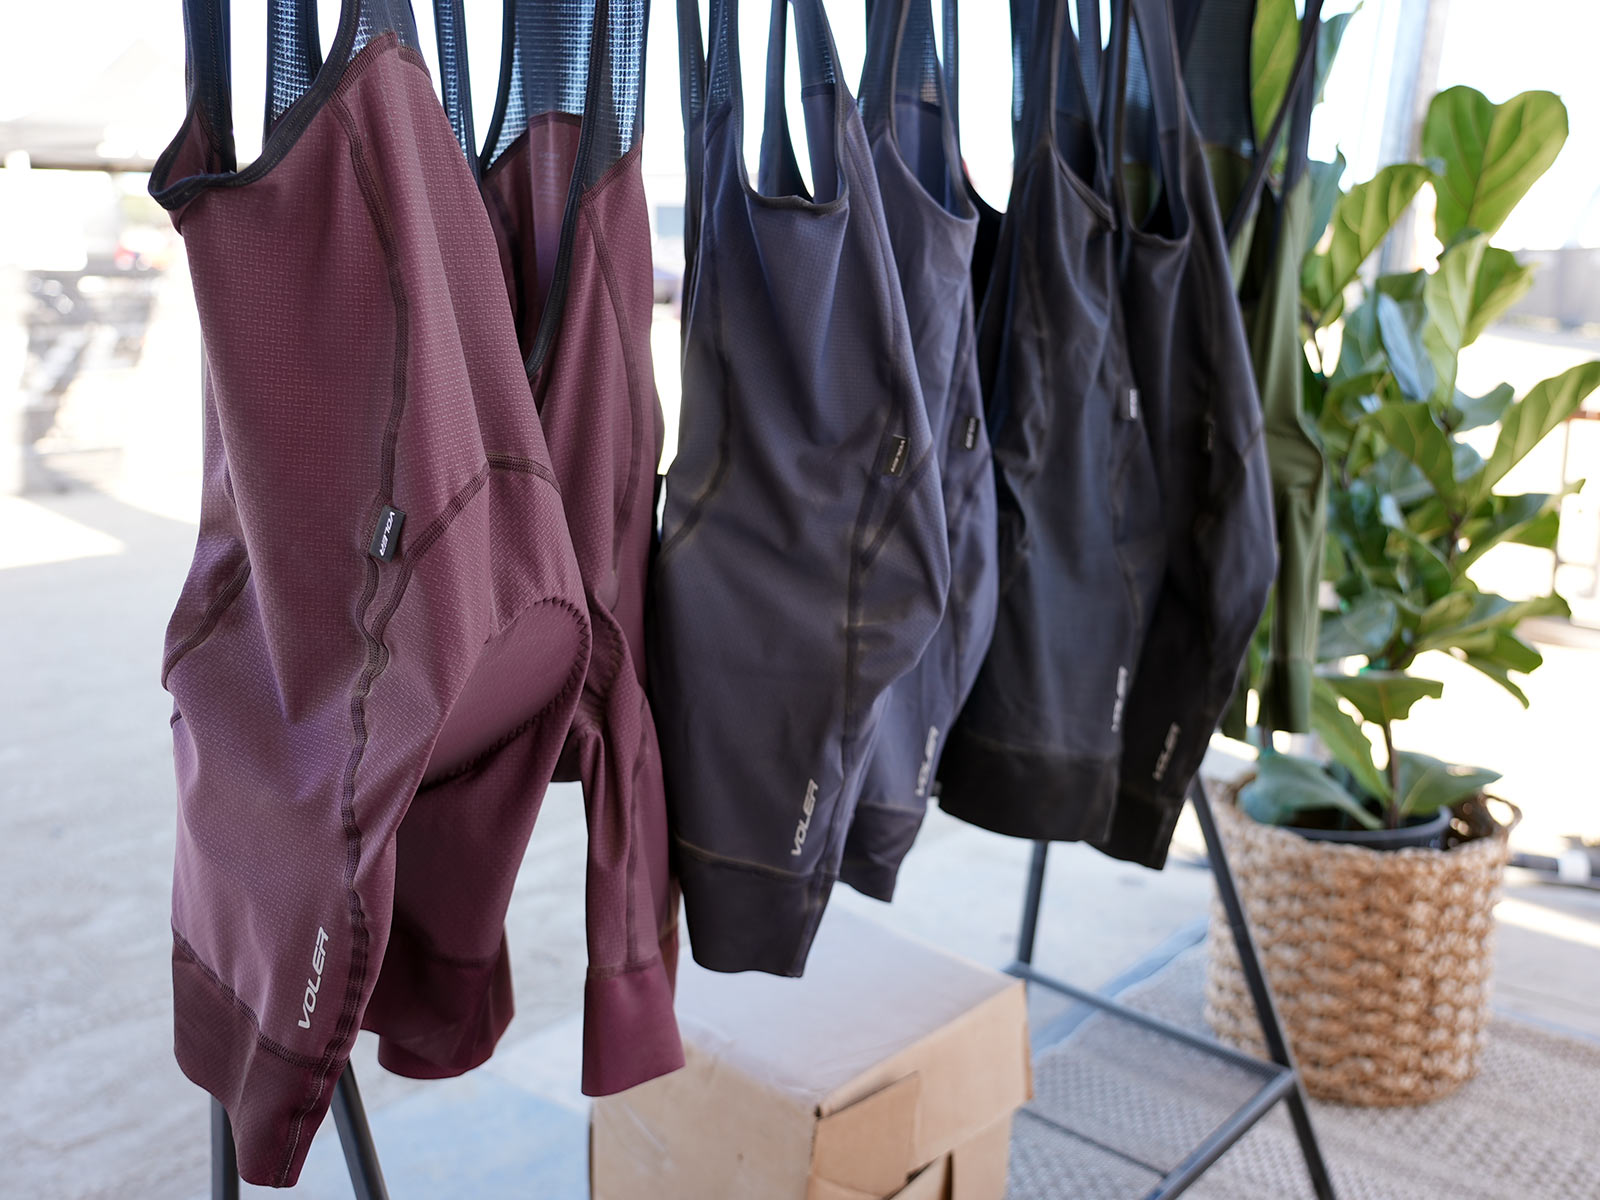 voler black label bibshorts for all conditions